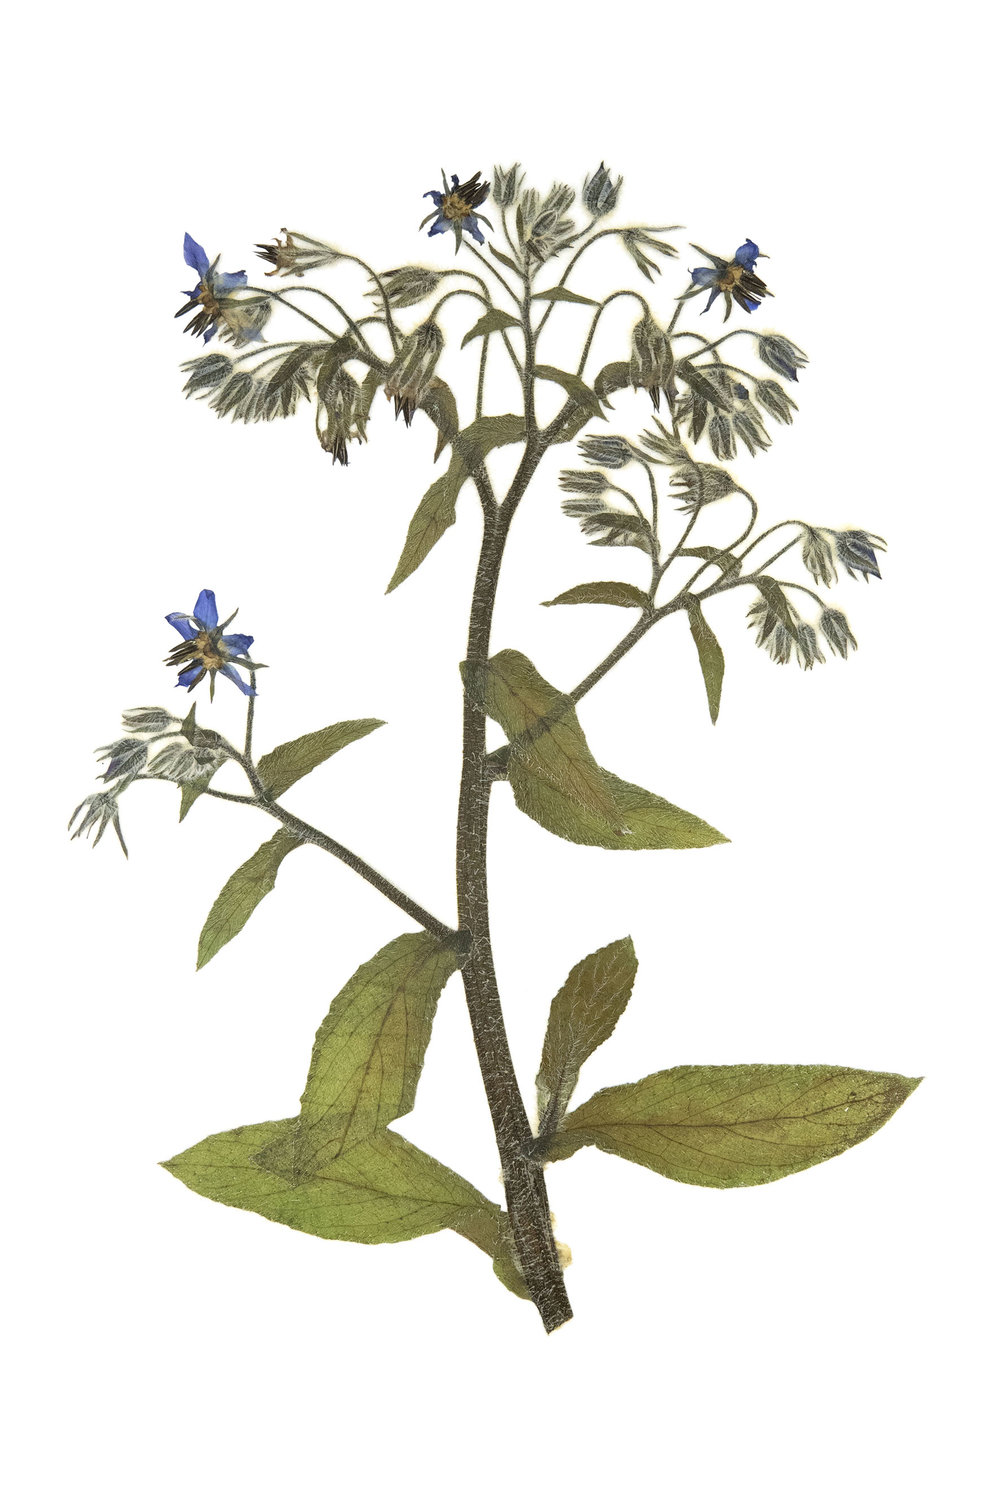 New! Borago officinalis / Borage